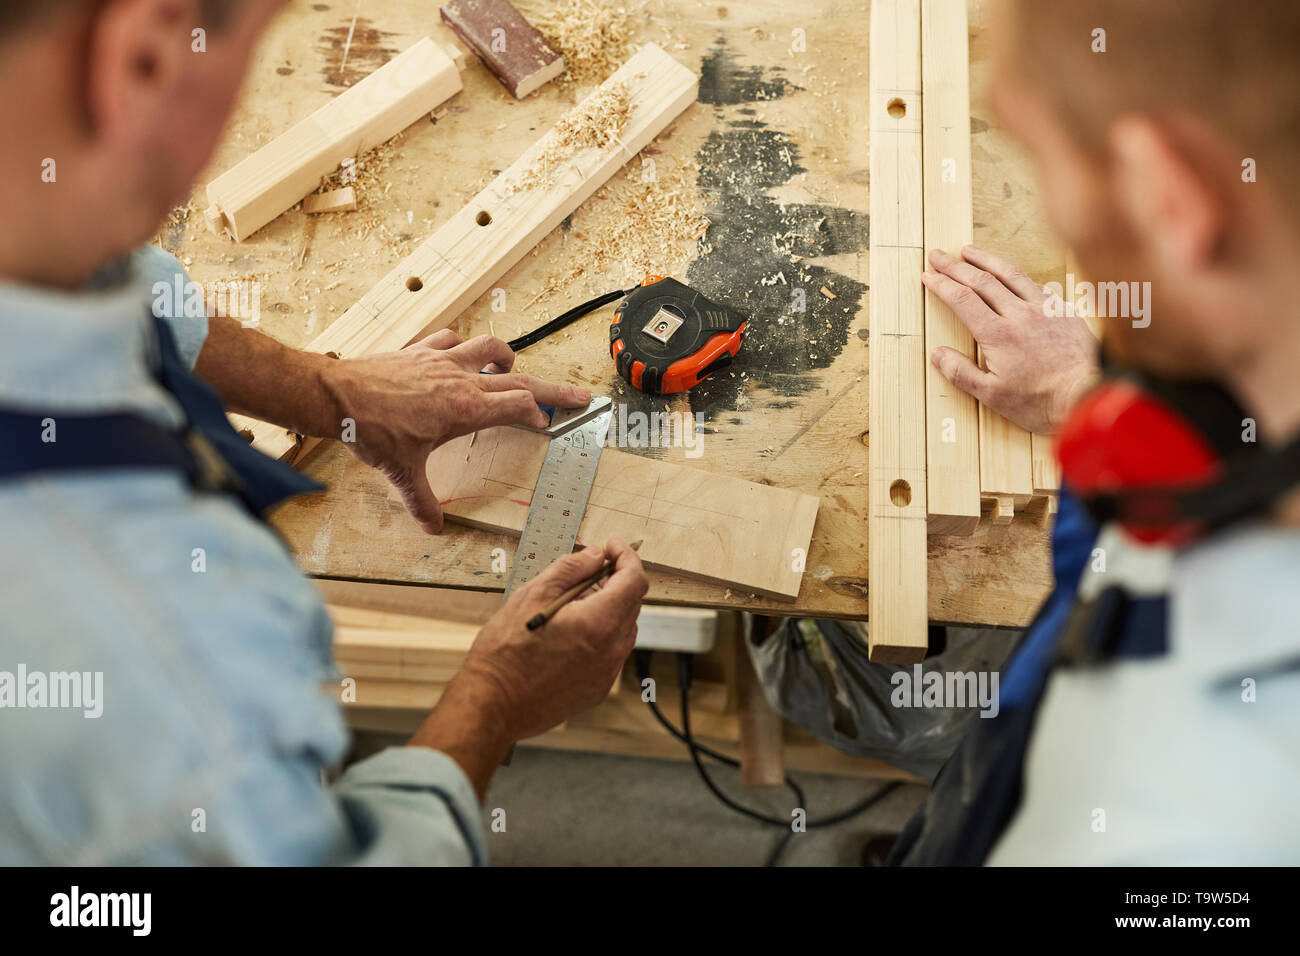 Top view  closeup of carpenters workstation with senior man measuring wood, copy space - Stock Image